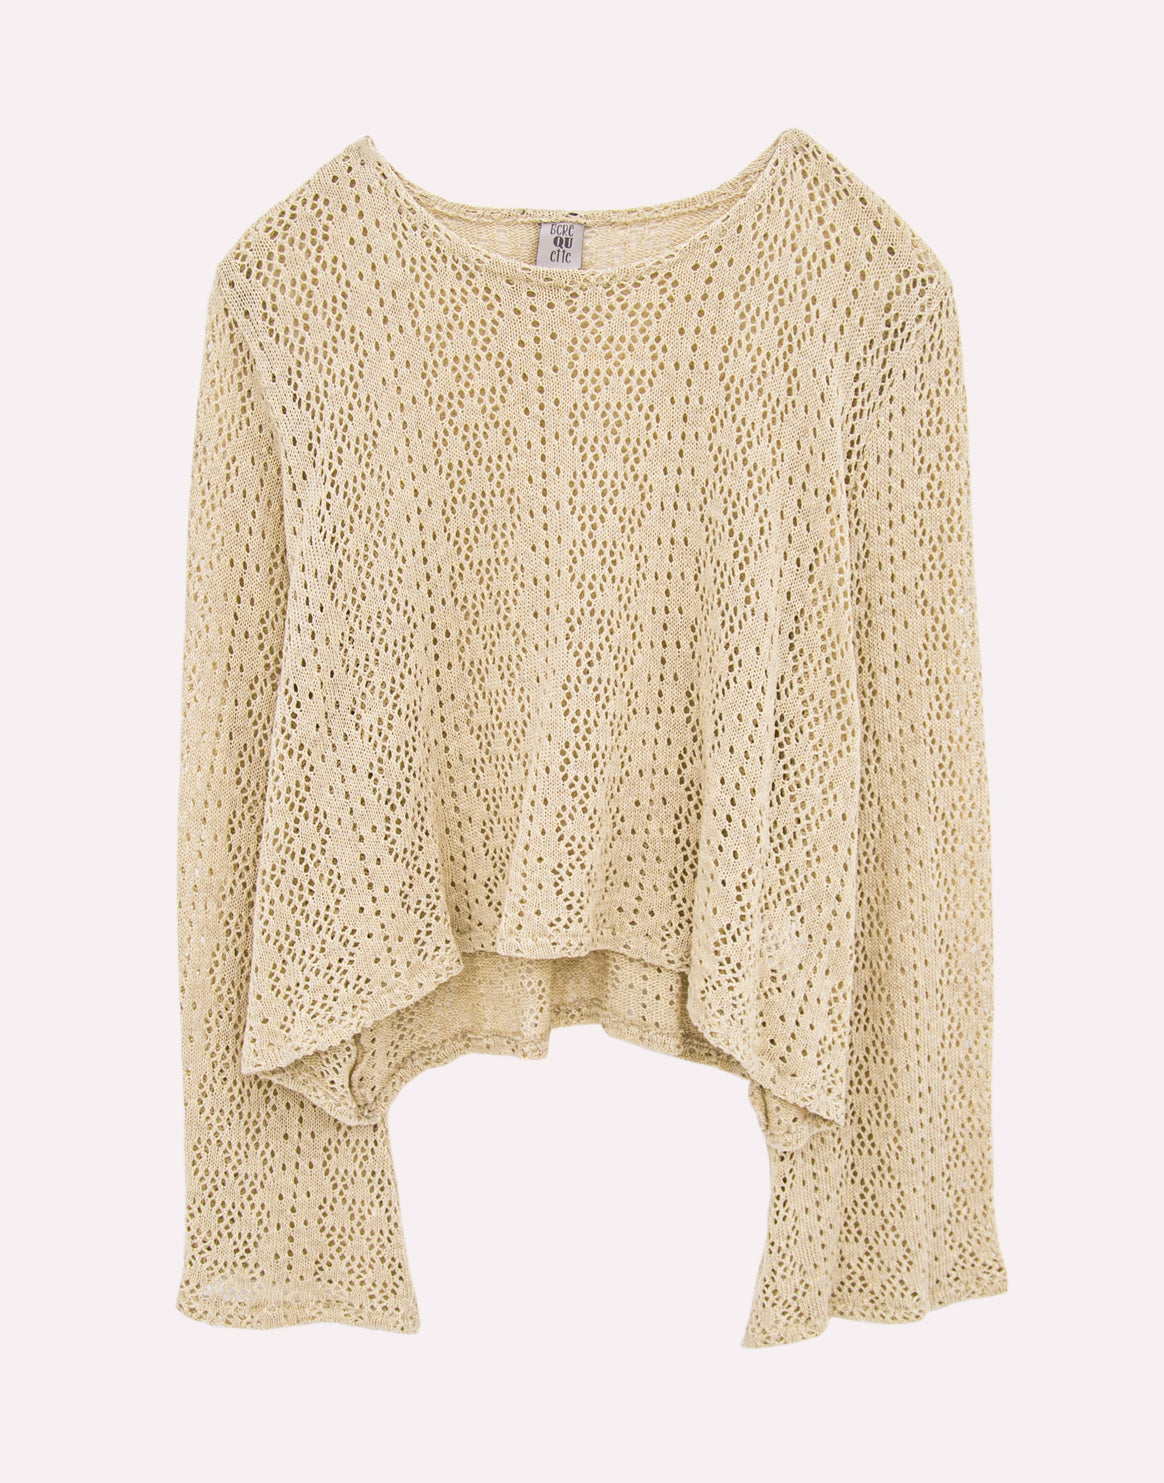 Berequette Knitted Beige Top